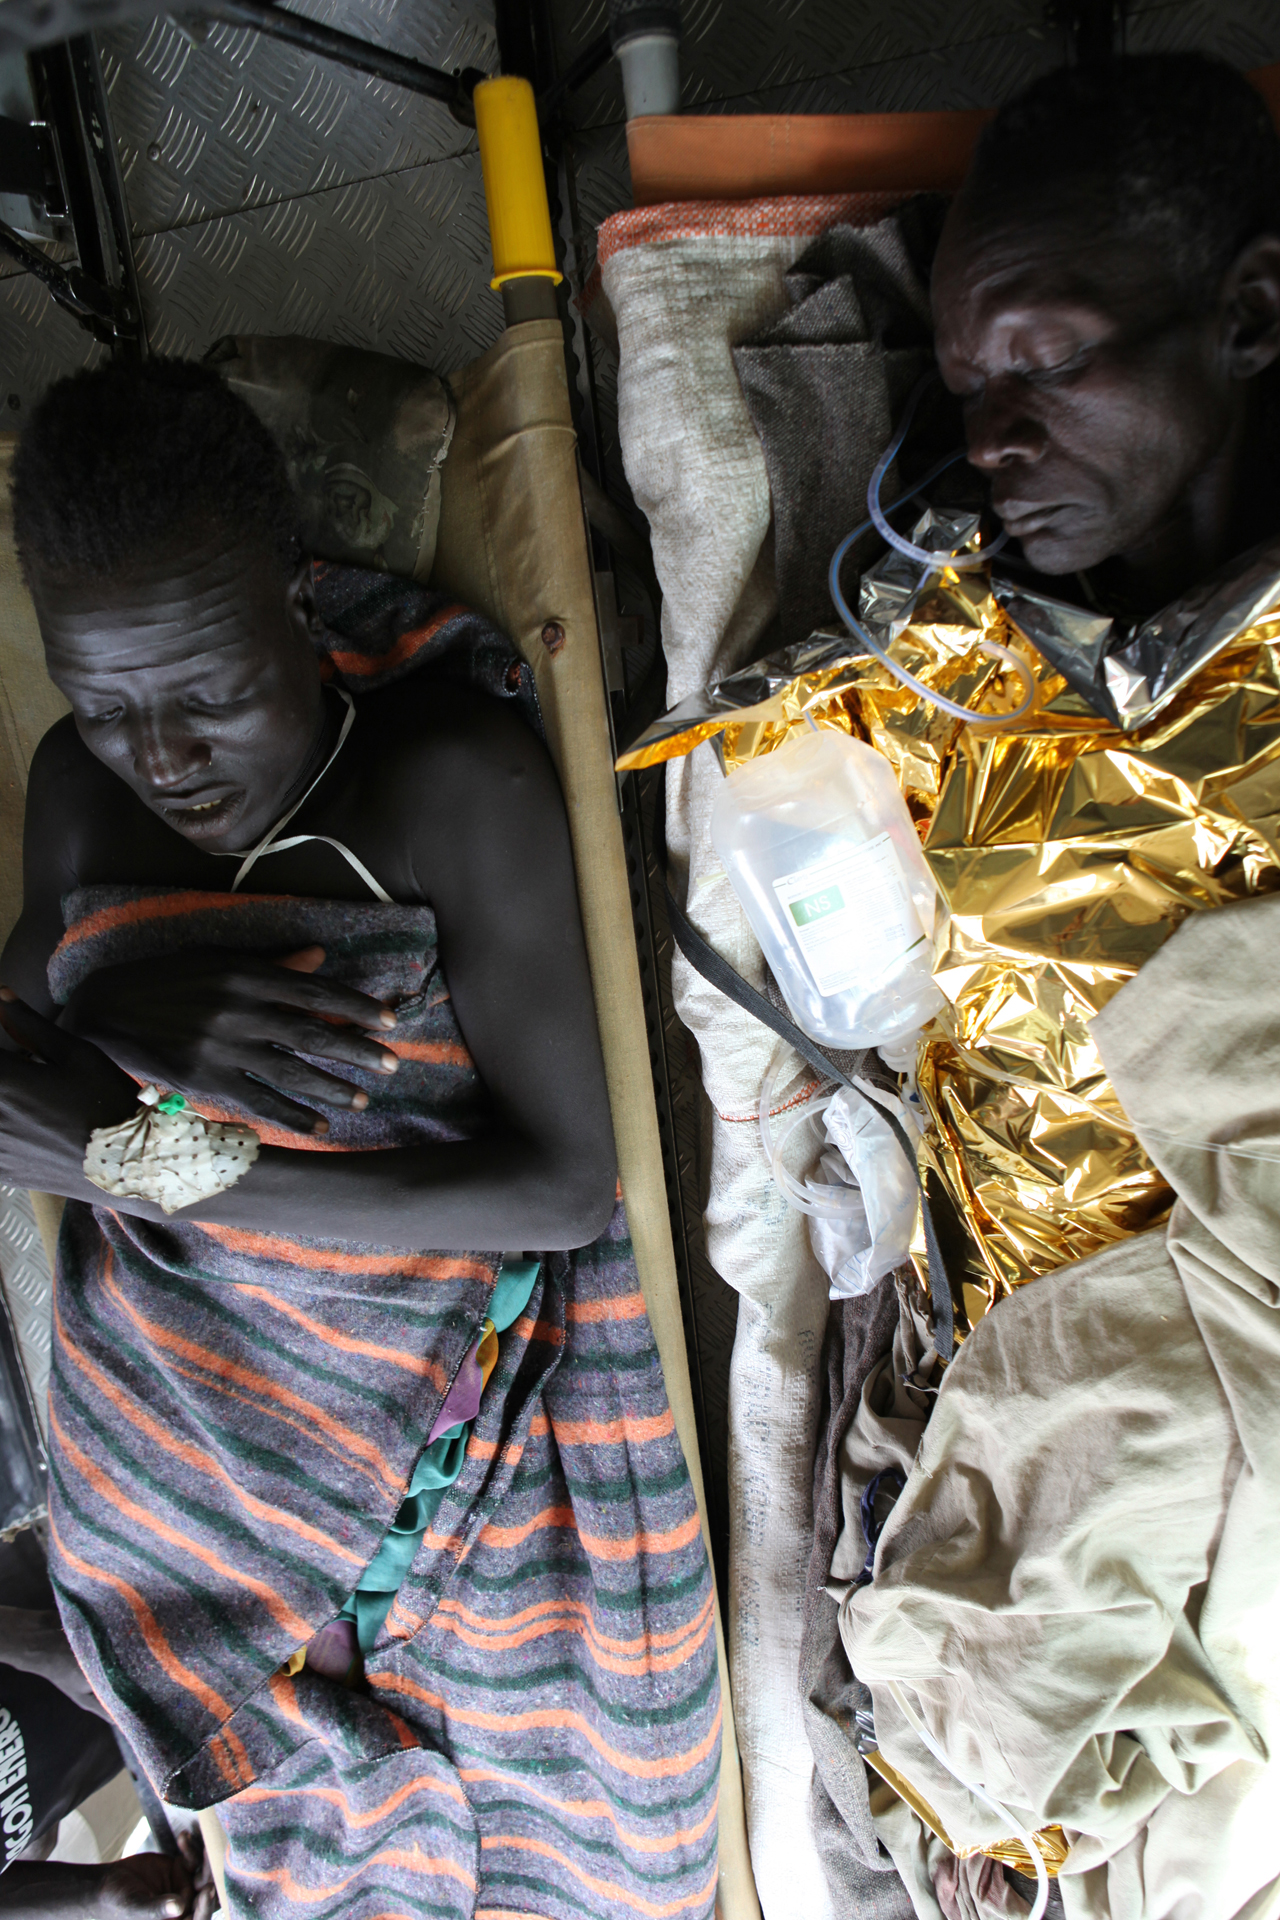 Patients are transported by air to the MSF-H Nasir Hospital in Upper Nile. Wiek Muon Mok, 52, (R) is flown from Pieri, Jonglei State, for surgery on a ruptured hernia and necrotic bowel extrusion due to traditional surgery three days prior. Rout Meet Makuach, 27, (L) suffered a gunshot wound and fractured leg in Lankien, Jonglei State, and also needs surgery.